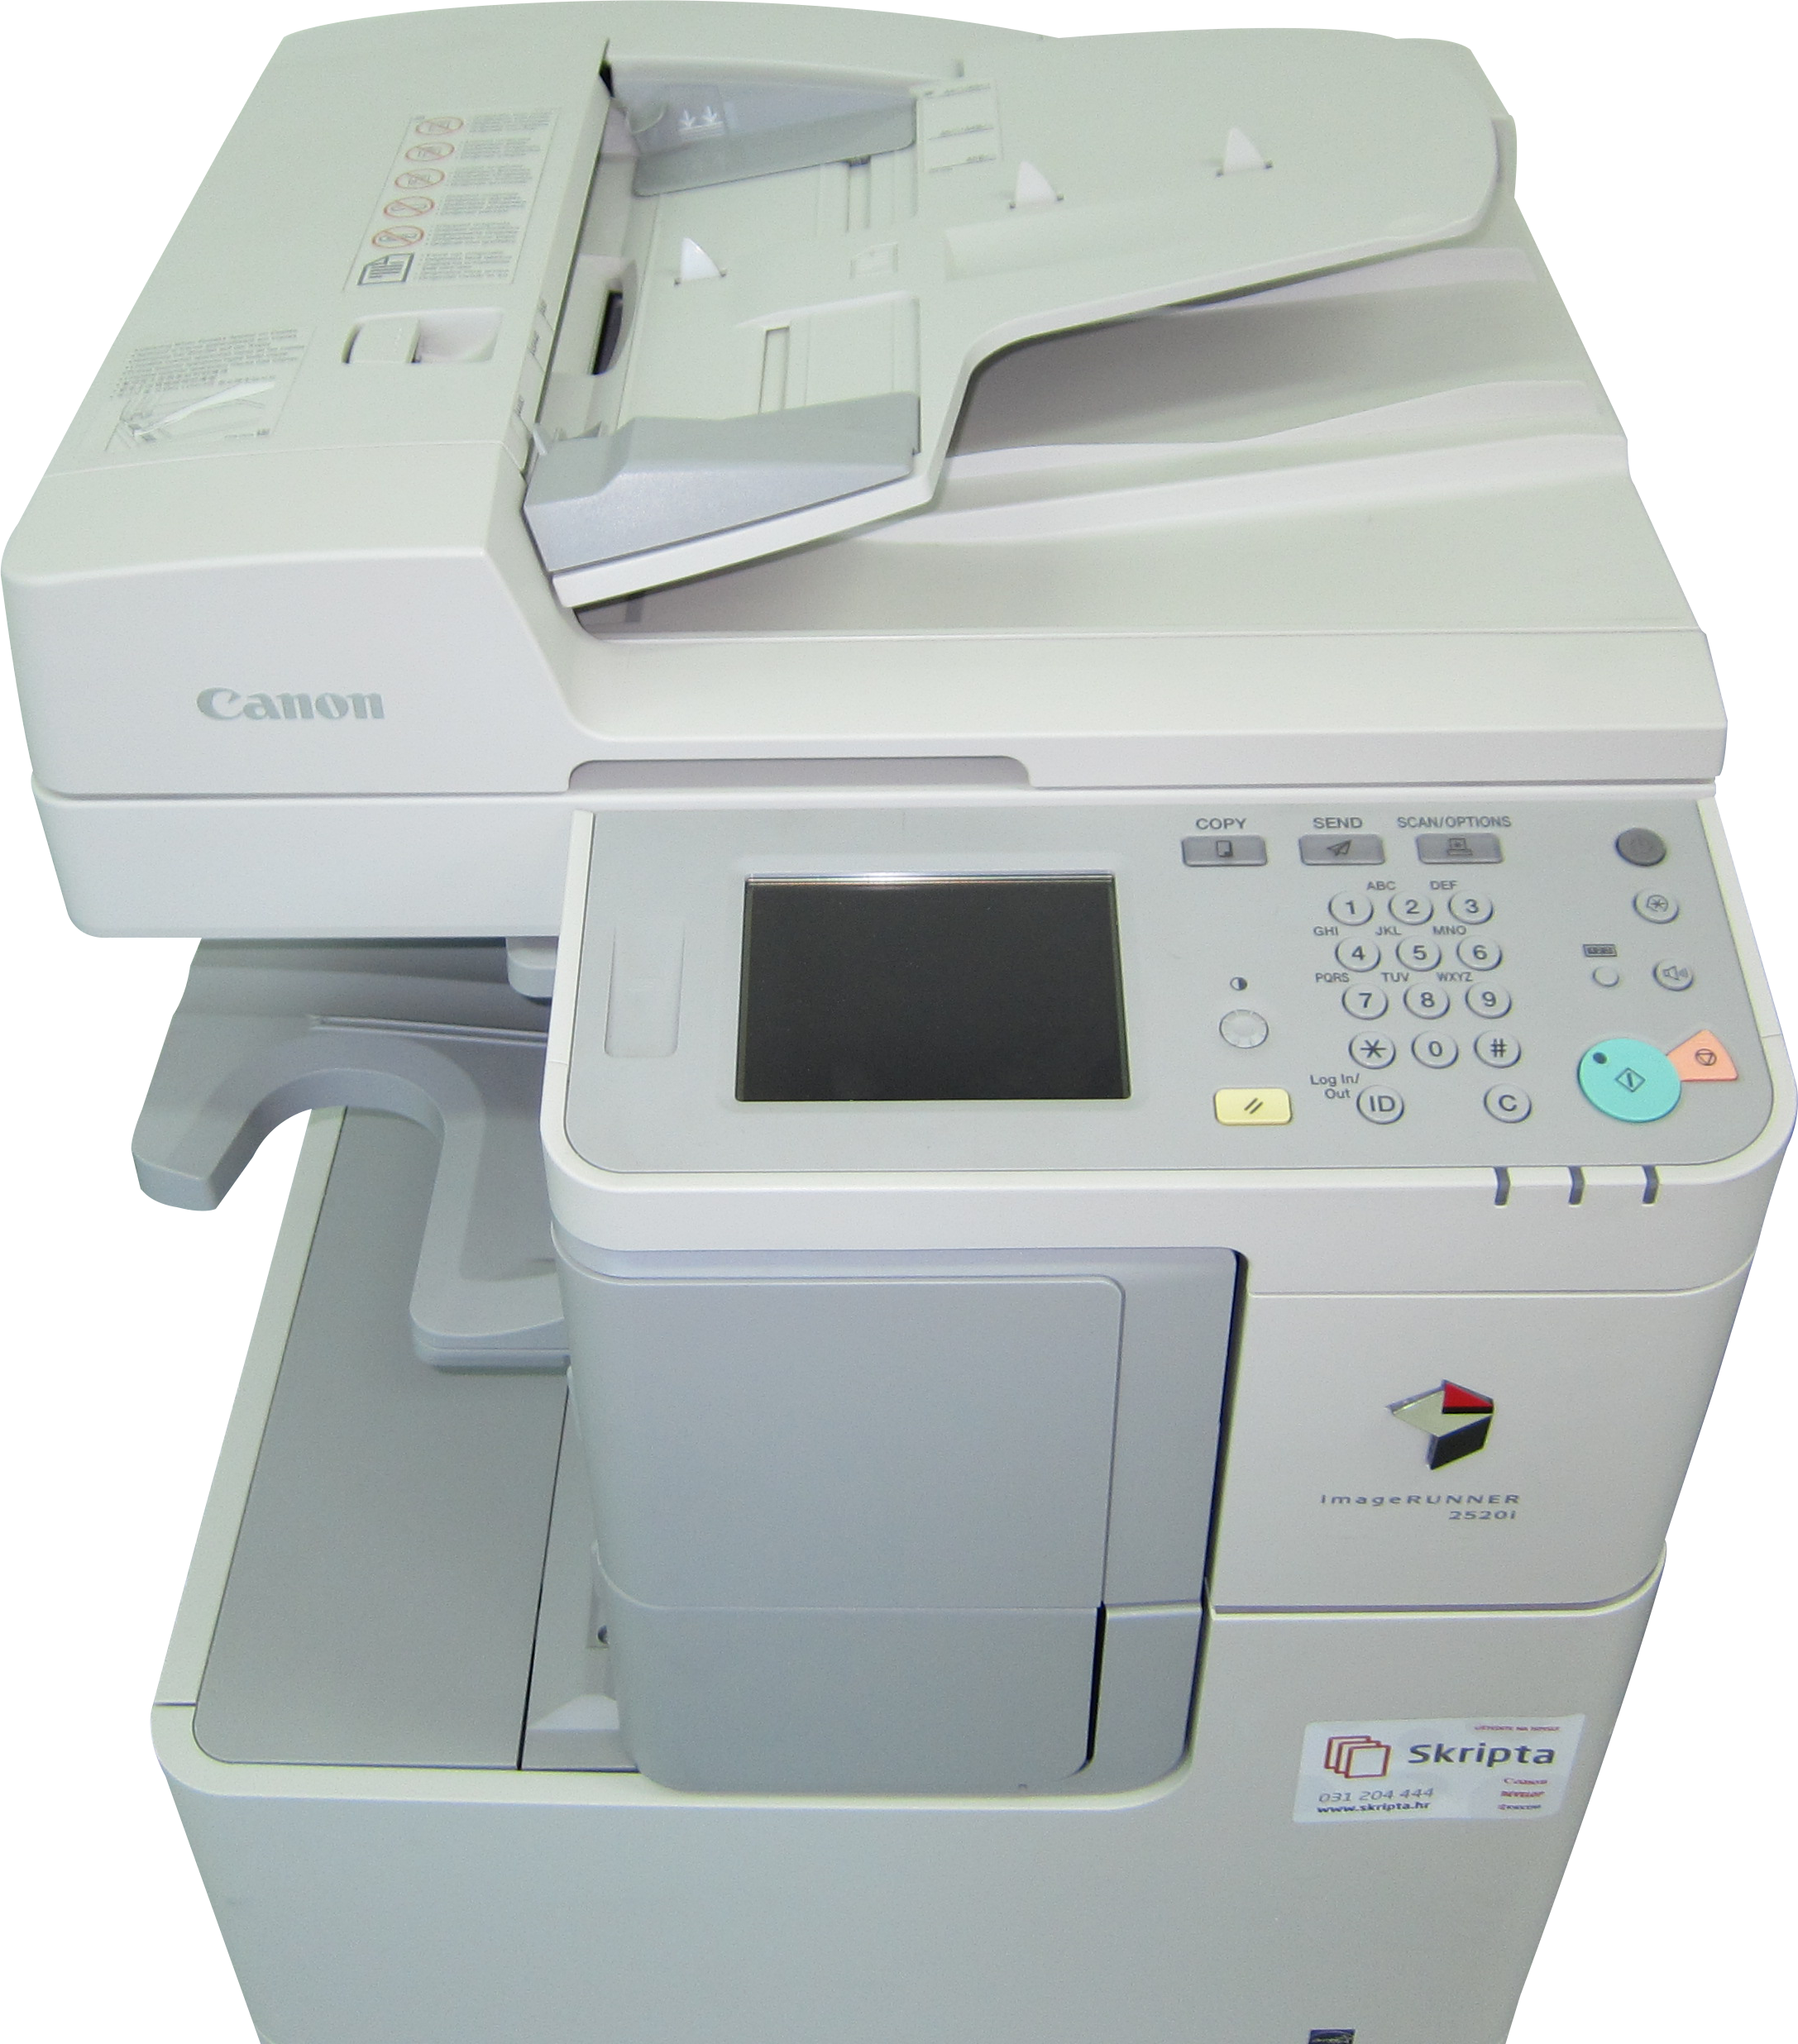 Canon iR2520i imageRunner2520i Office Printer - Canon Copiers Canon photocopier ir 2520